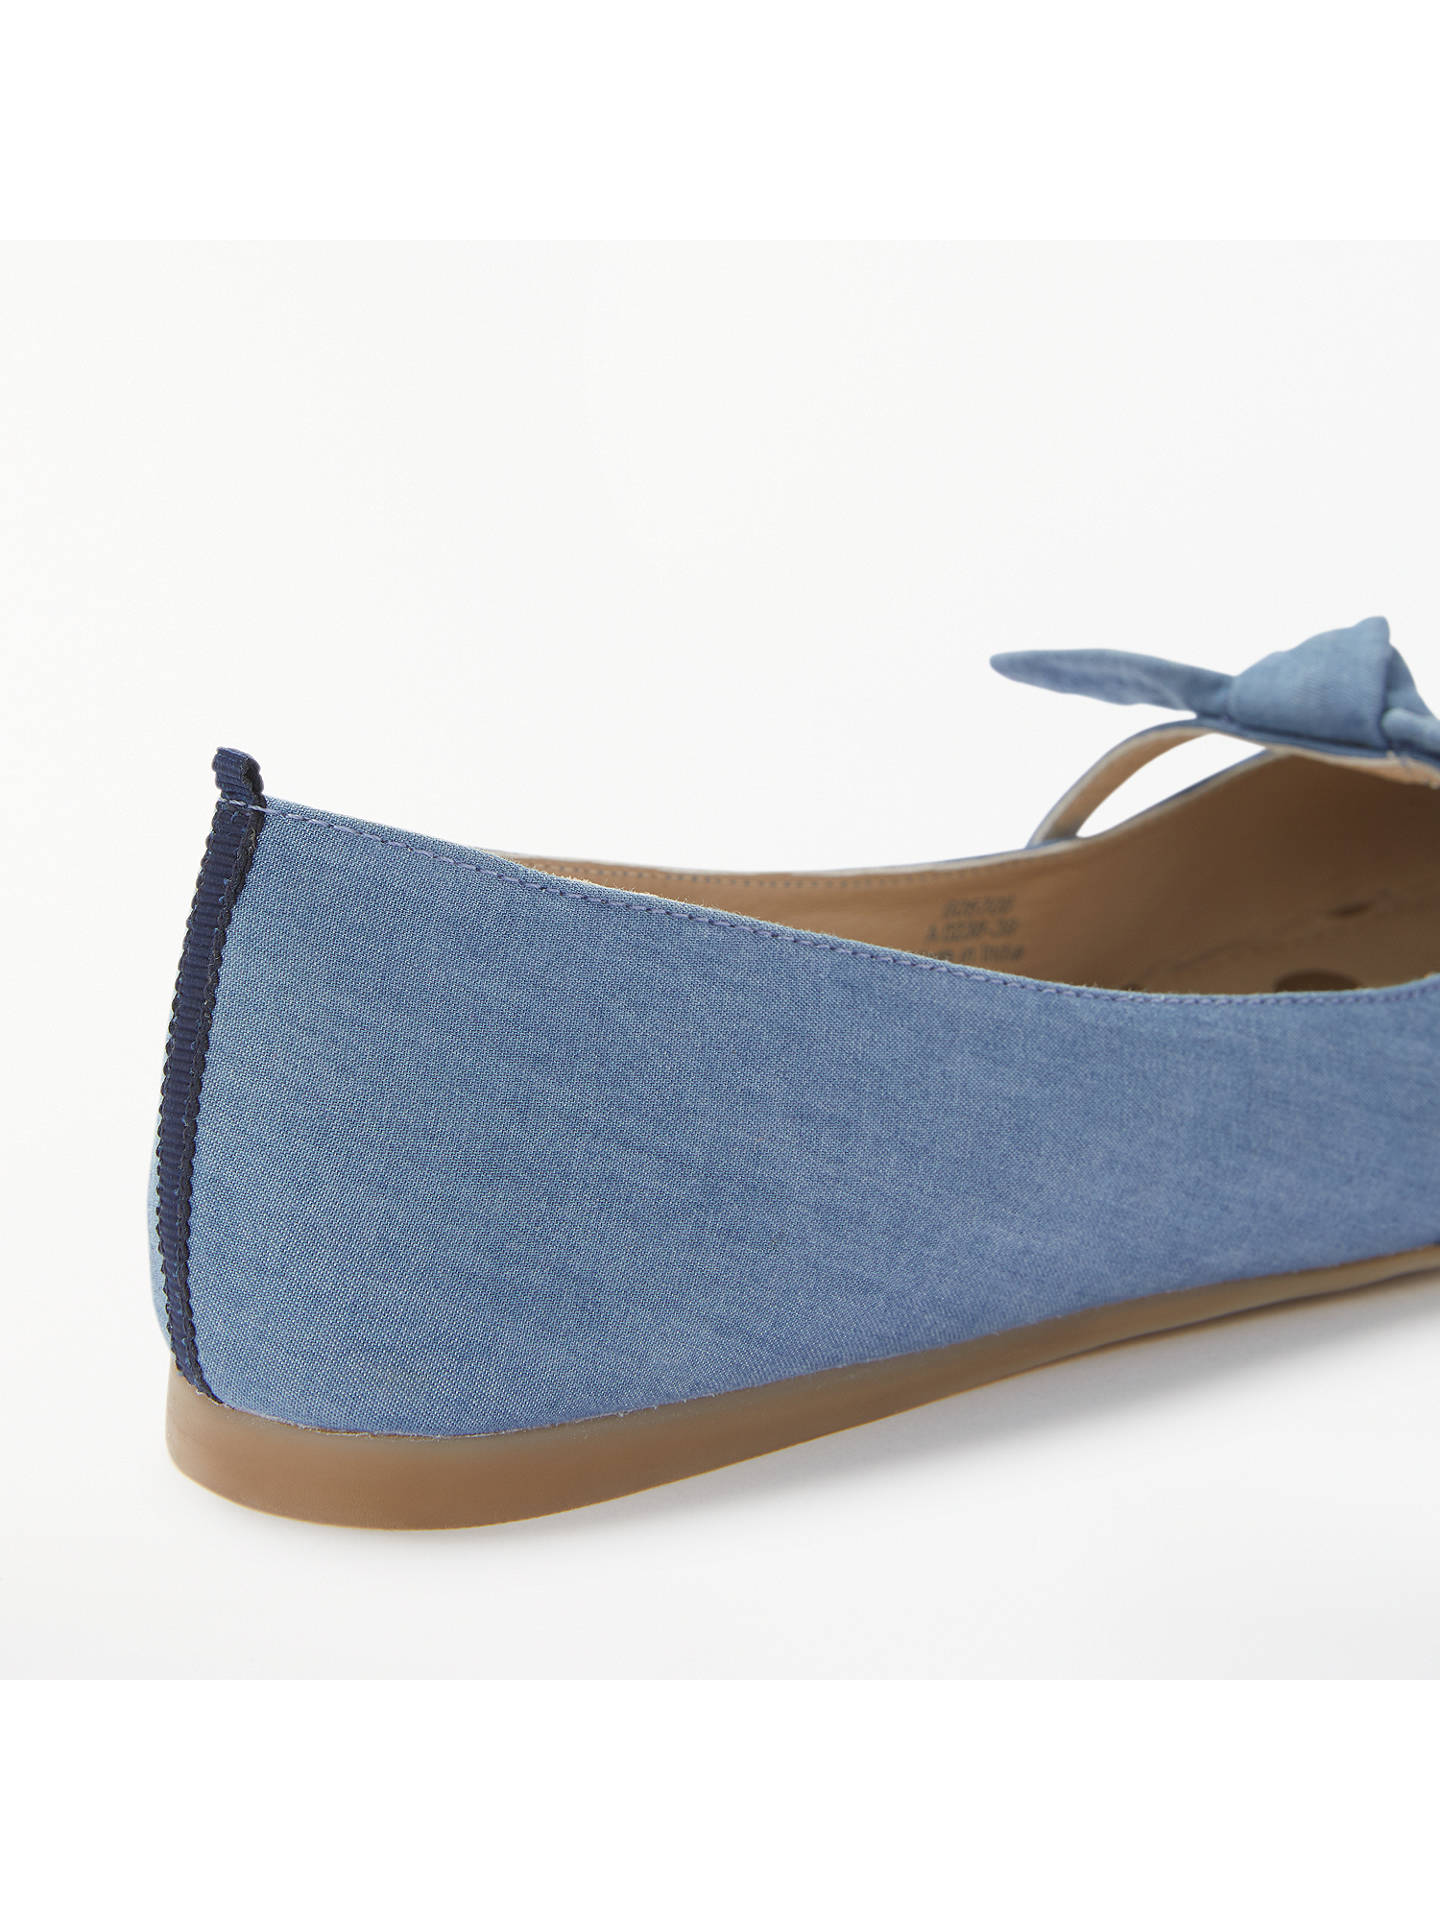 BuyBoden Lottie Pointed Toe Pumps, Blue, 4 Online at johnlewis.com